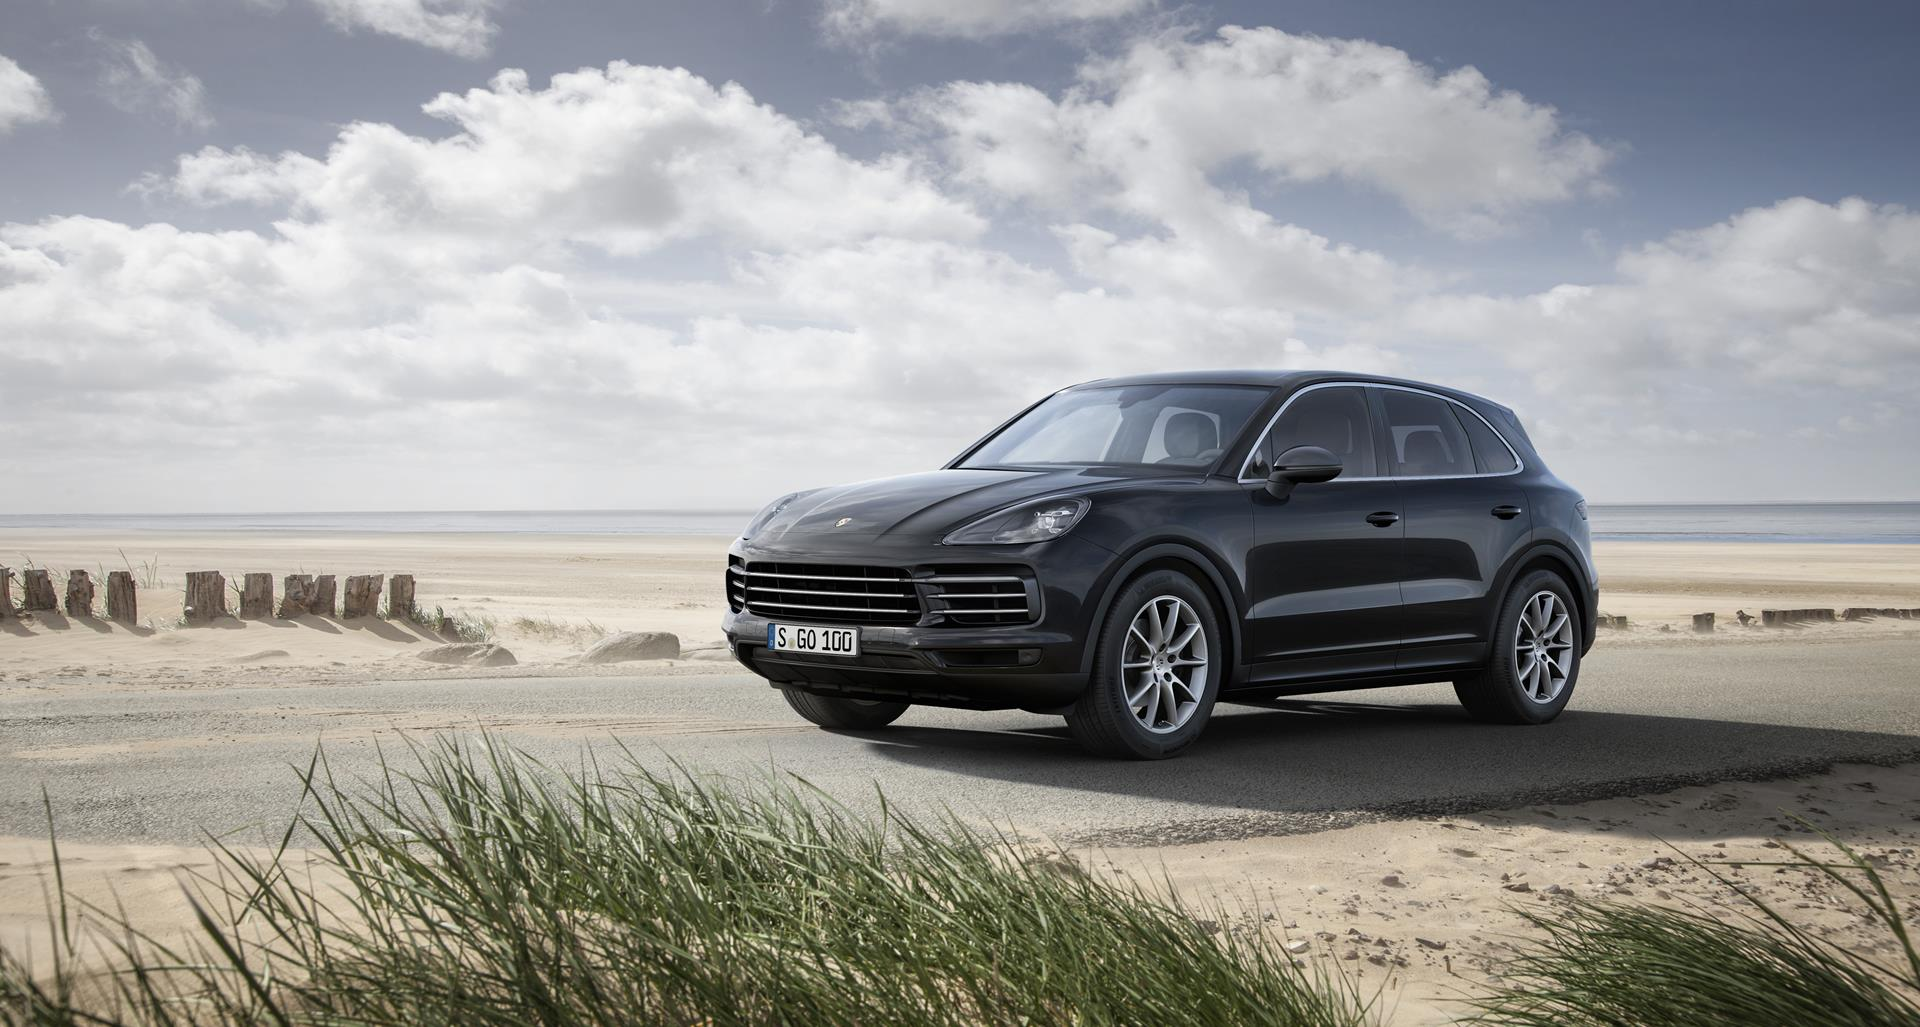 new cayenne takes after its iconic sibling the 911